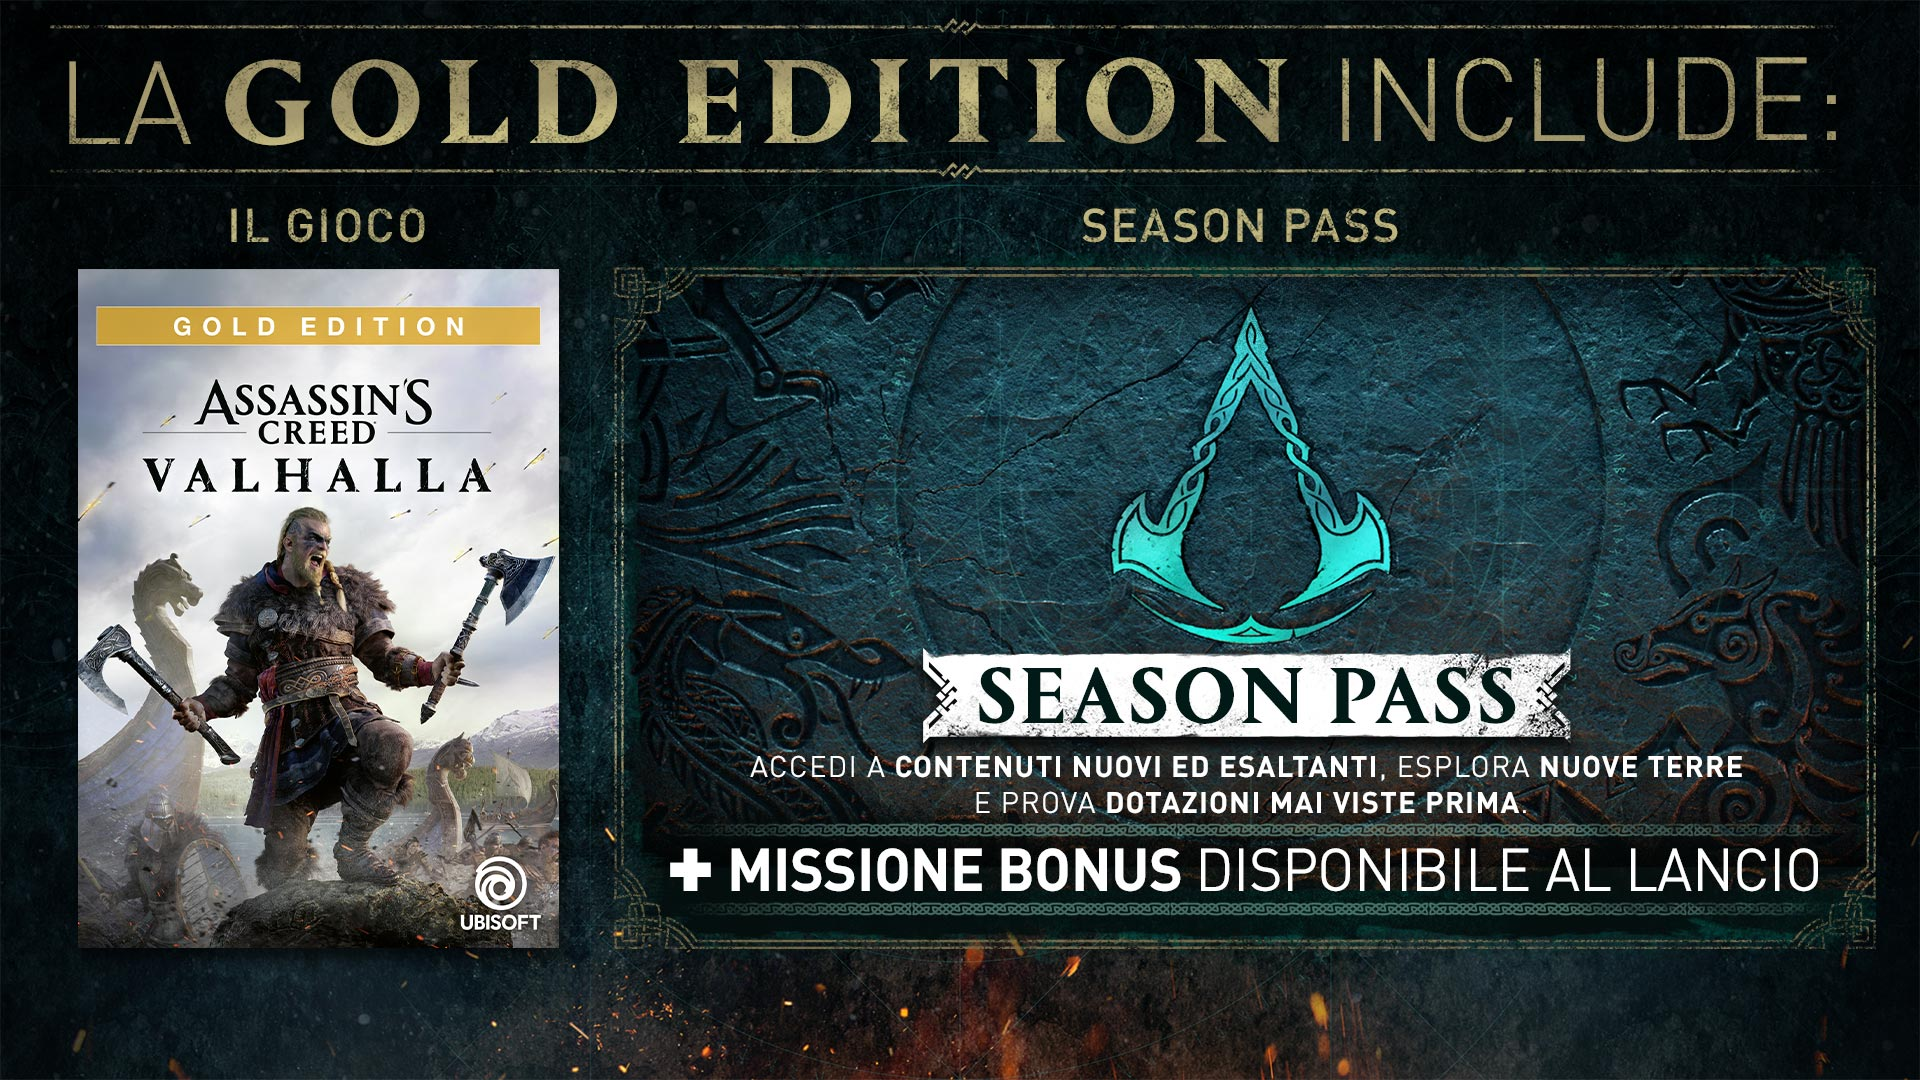 Assassin's Creed Walhalla